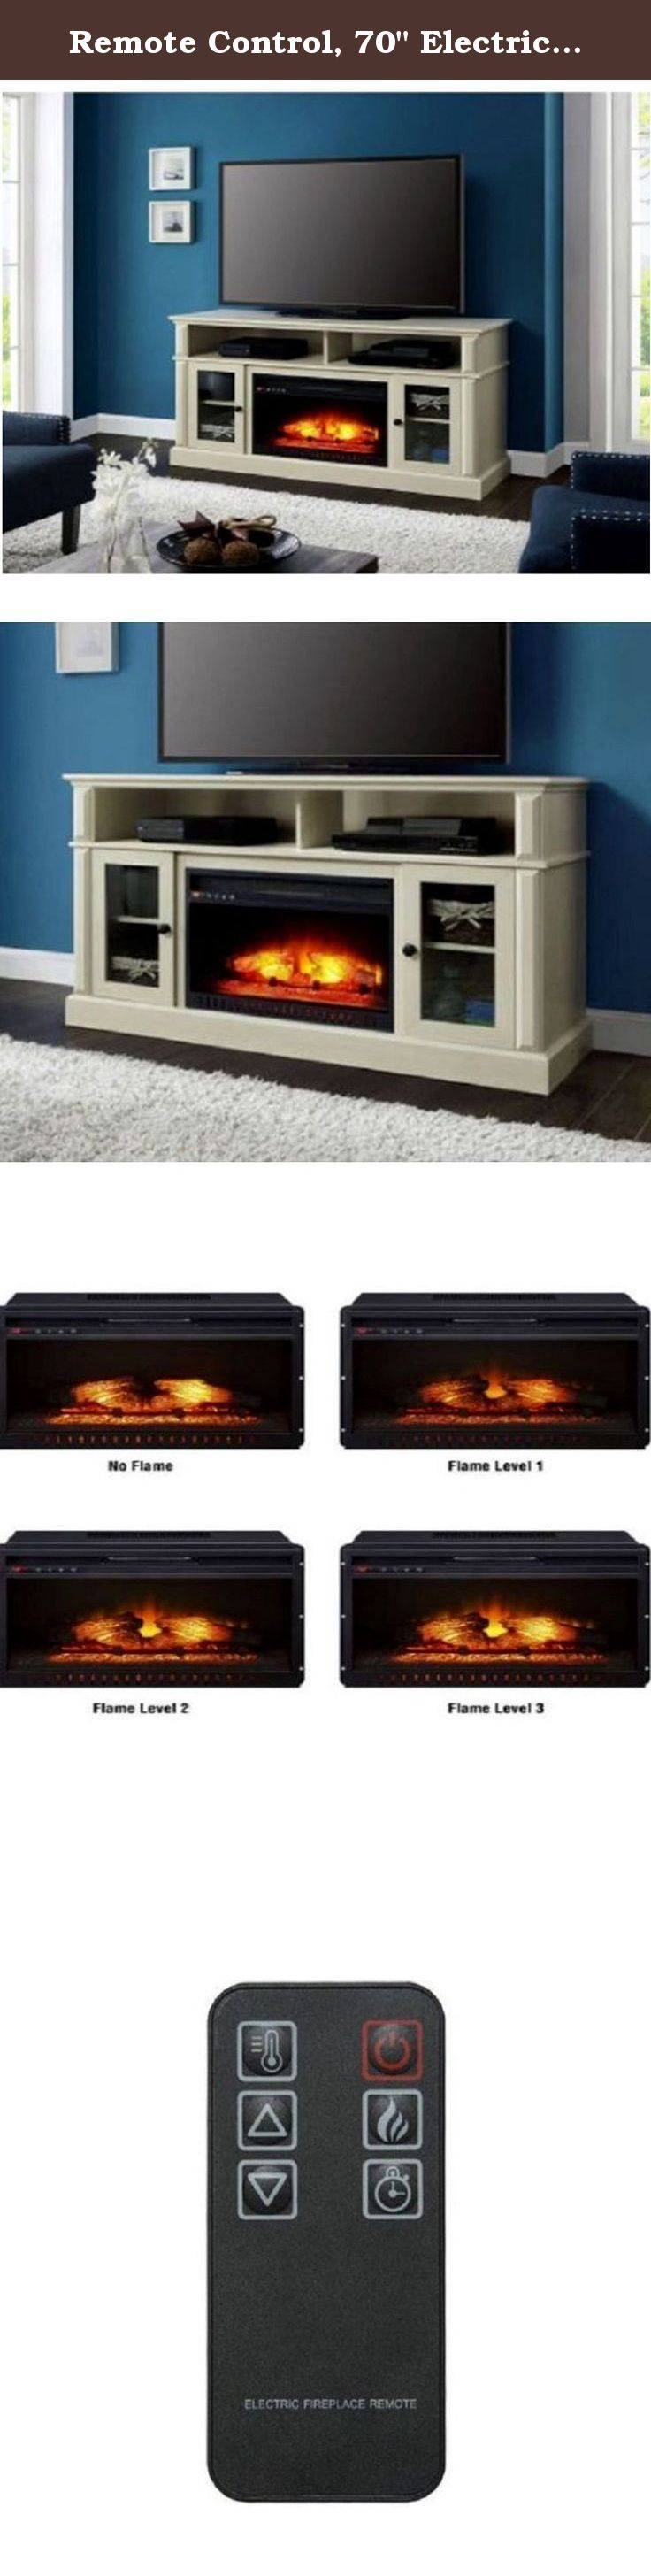 remote control 70 electric fireplace tv stand media entertainment